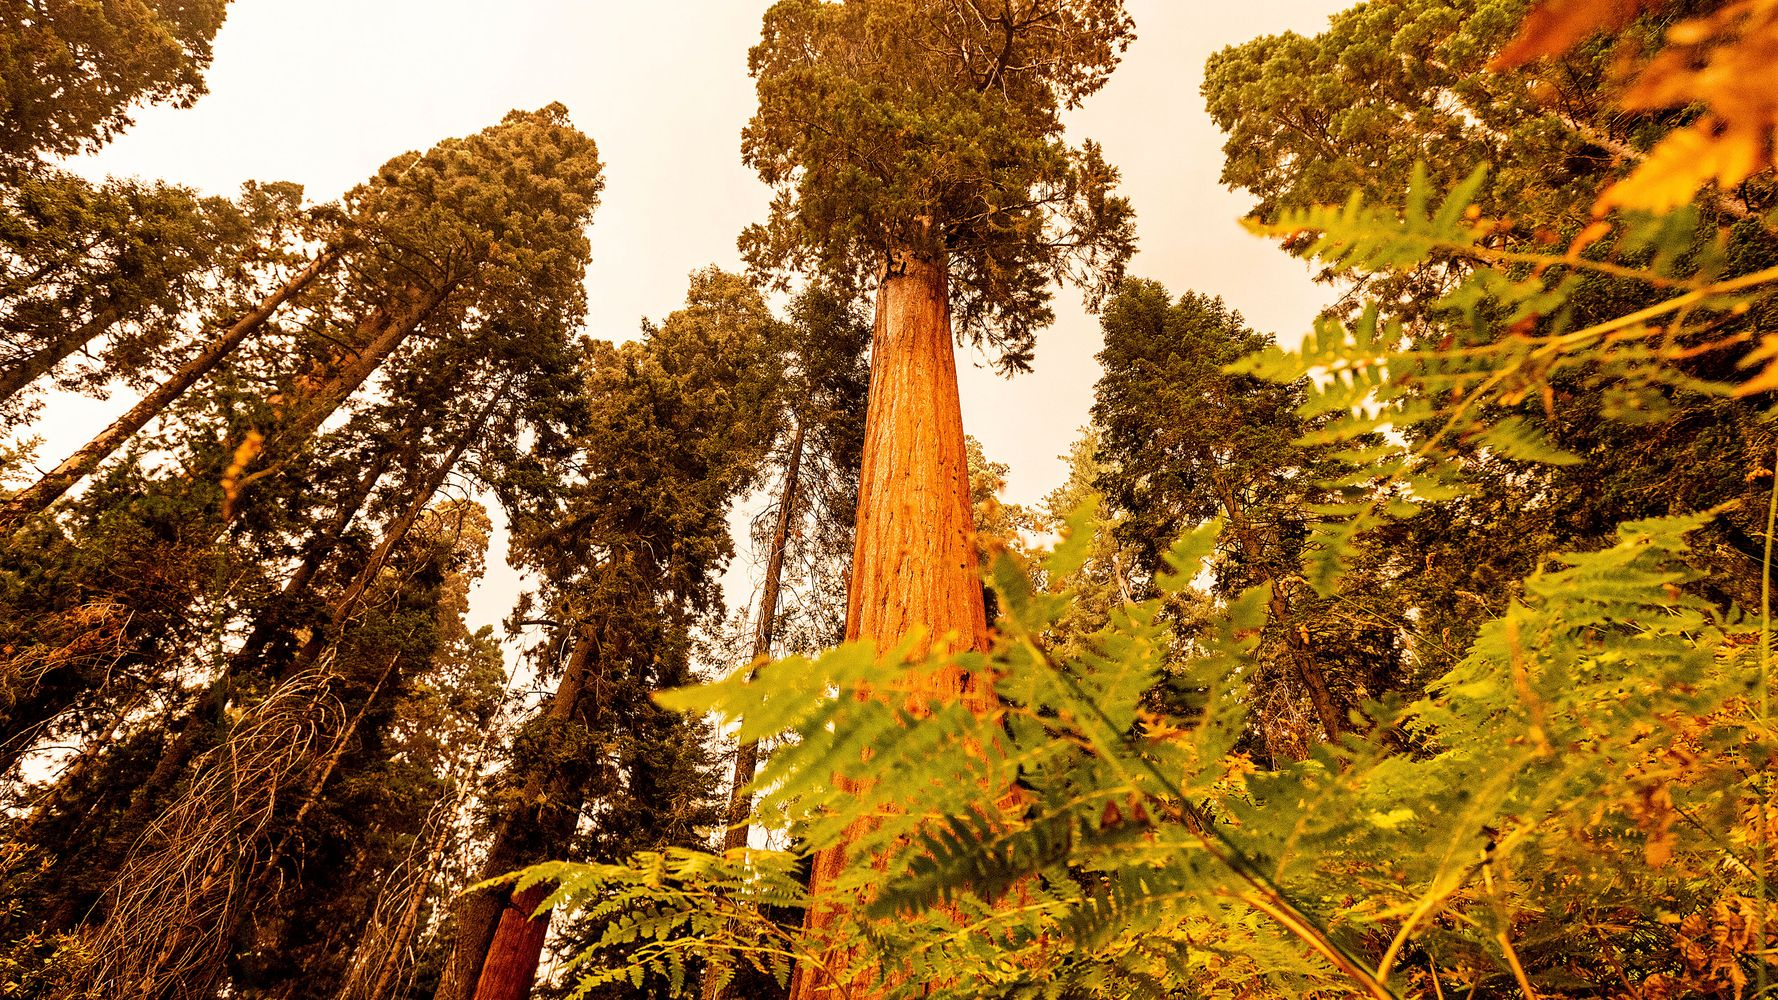 The World's Largest Tree At Risk As California Wildfires Head Toward Giant Sequoia Groves